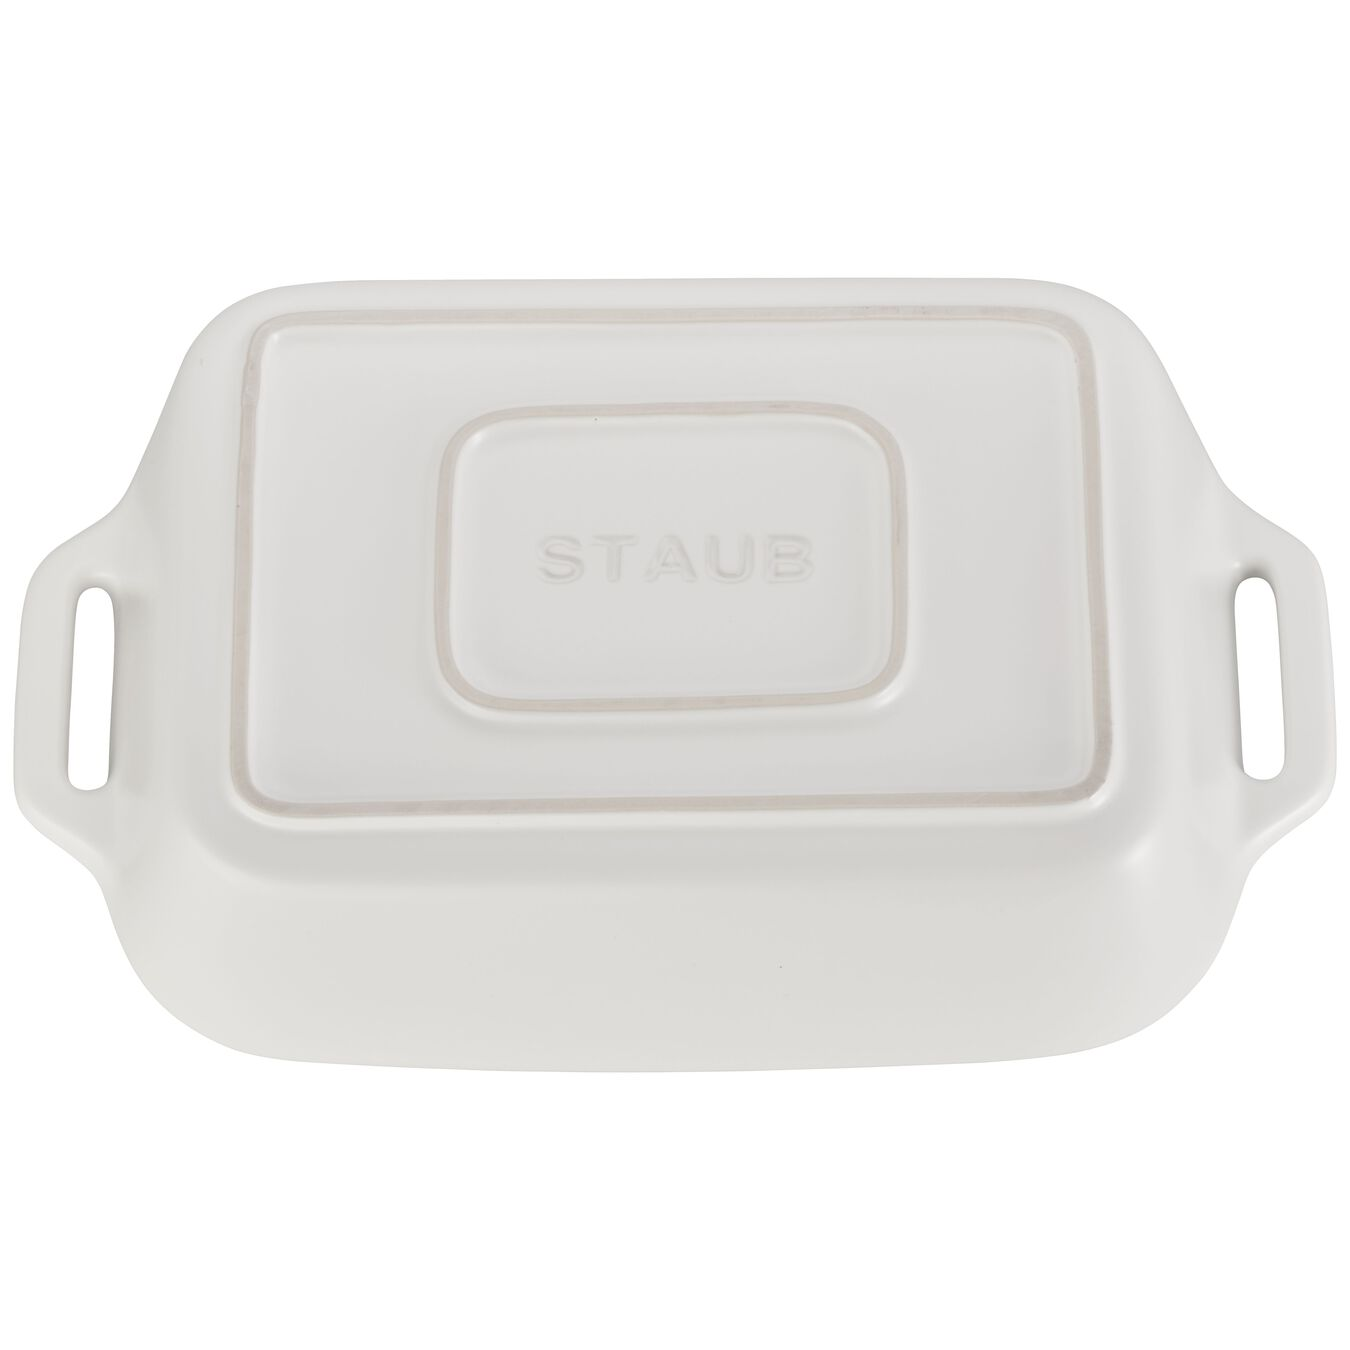 2-pc Rectangular Baking Dish Set - Matte White,,large 2